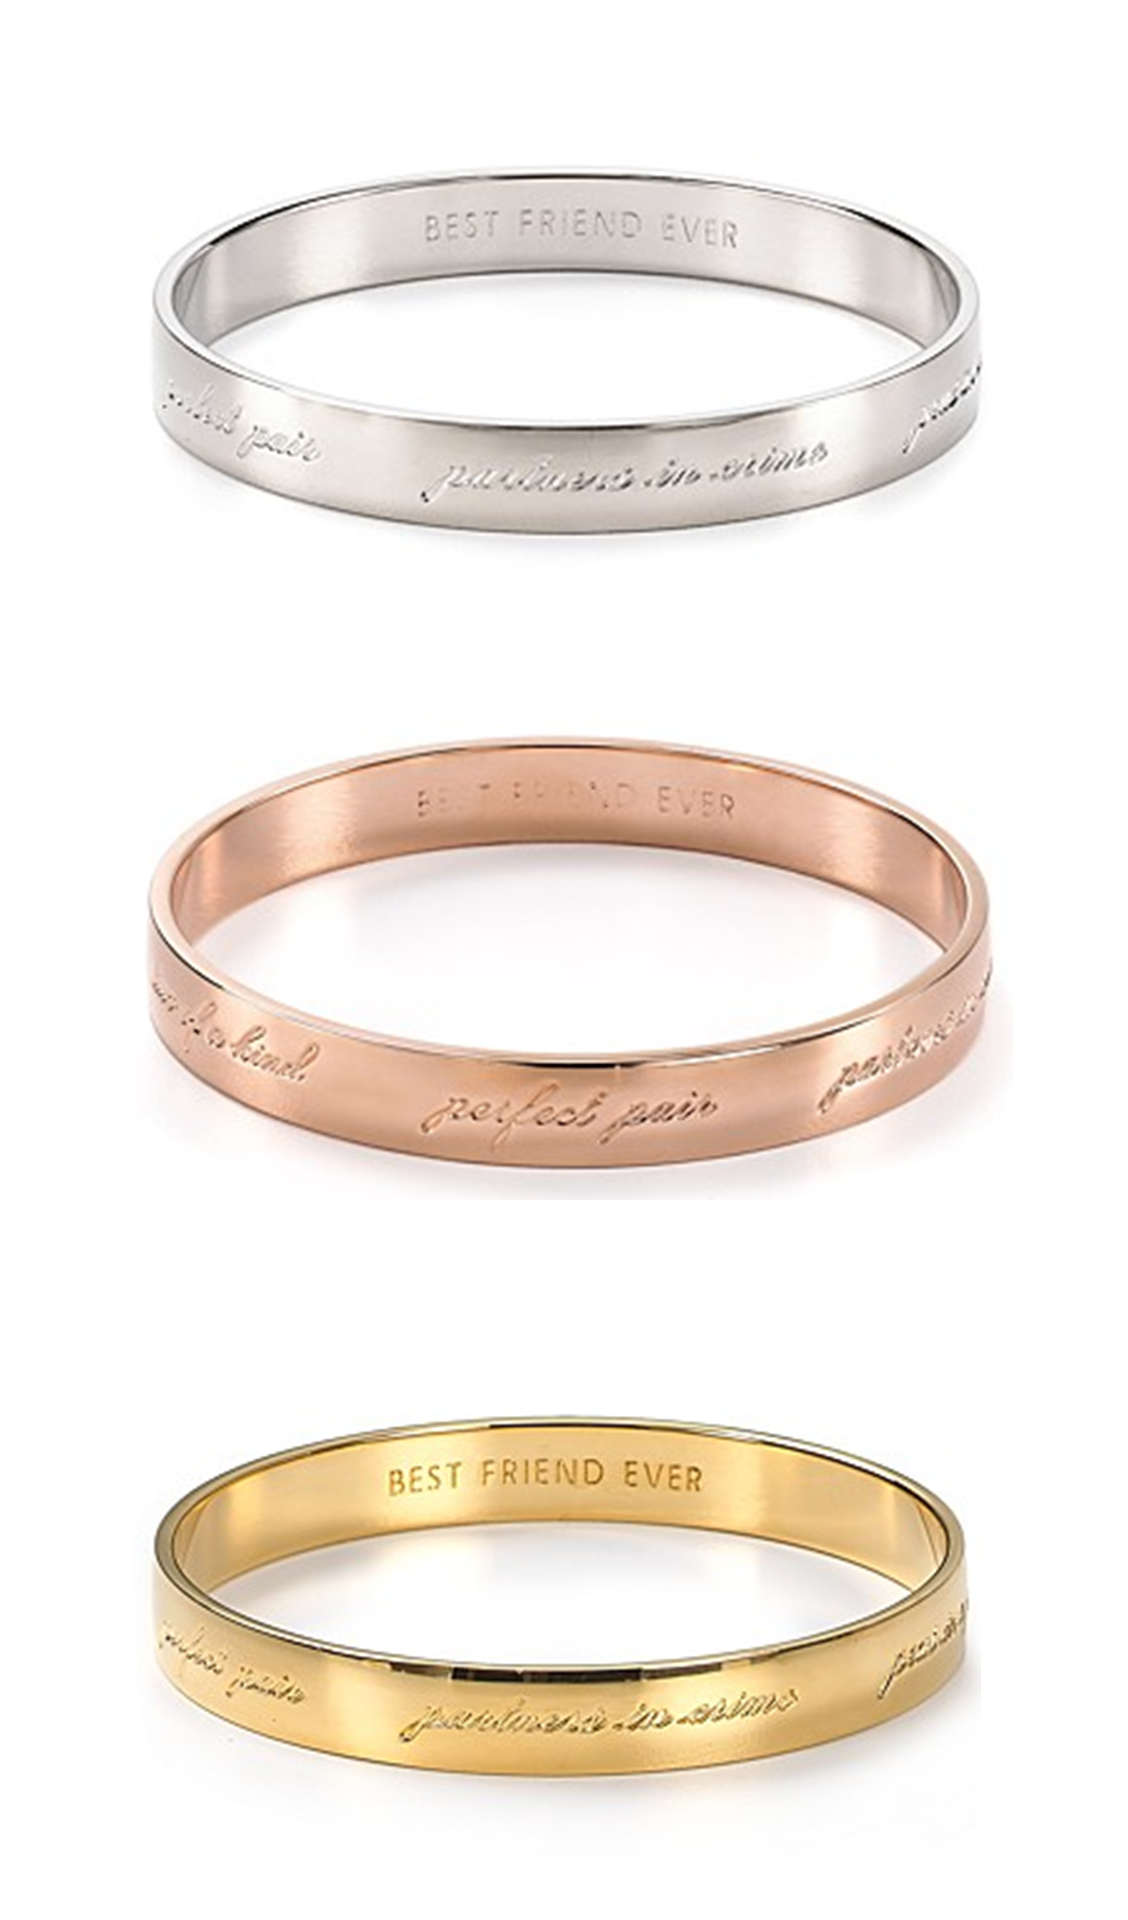 Kate Spade New York Best Friend Ever Bridesmaid Idiom Bangle Bracelet